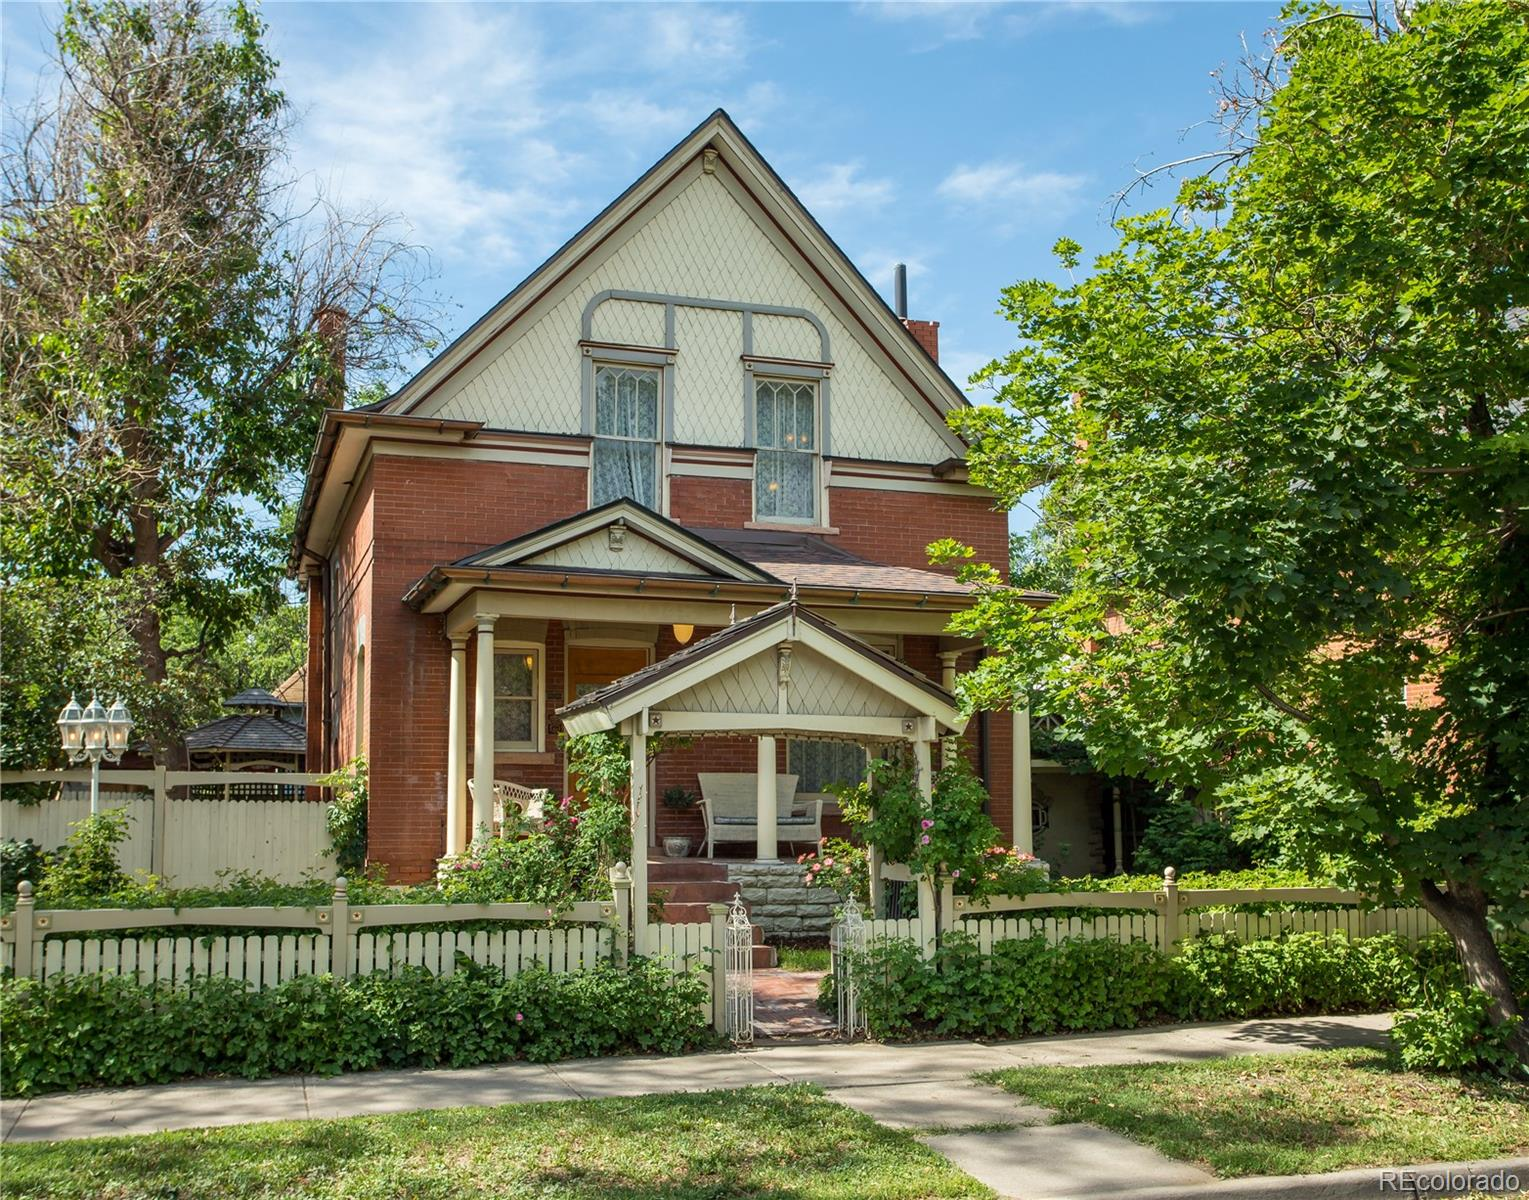 3048 W 23rd Avenue Property Photo - Denver, CO real estate listing